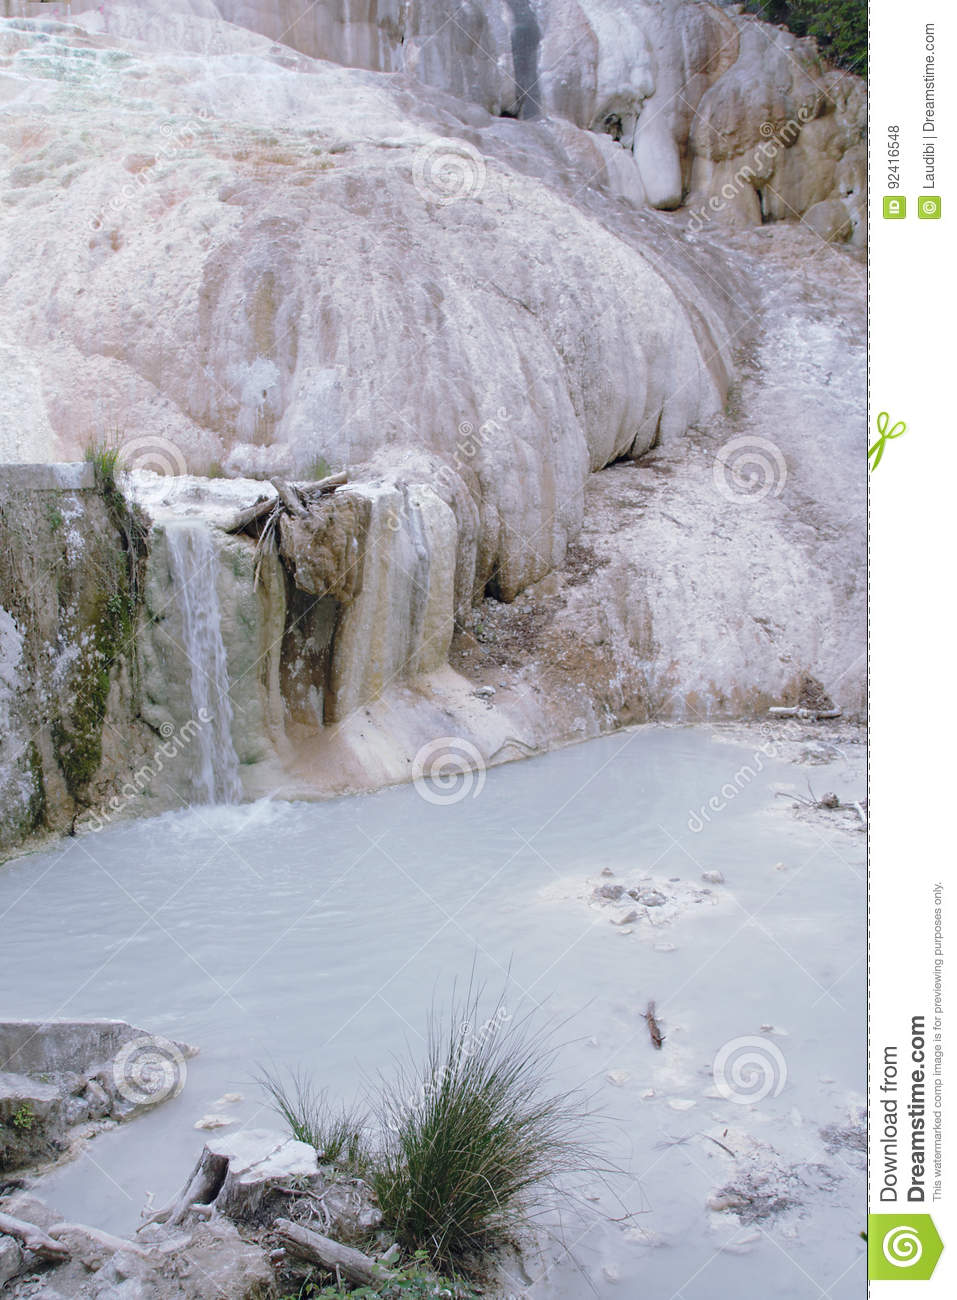 https://thumbs.dreamstime.com/z/spring-thermal-water-bagni-san-filippo-val-d-orcia-tuscany-italy-92416548.jpg